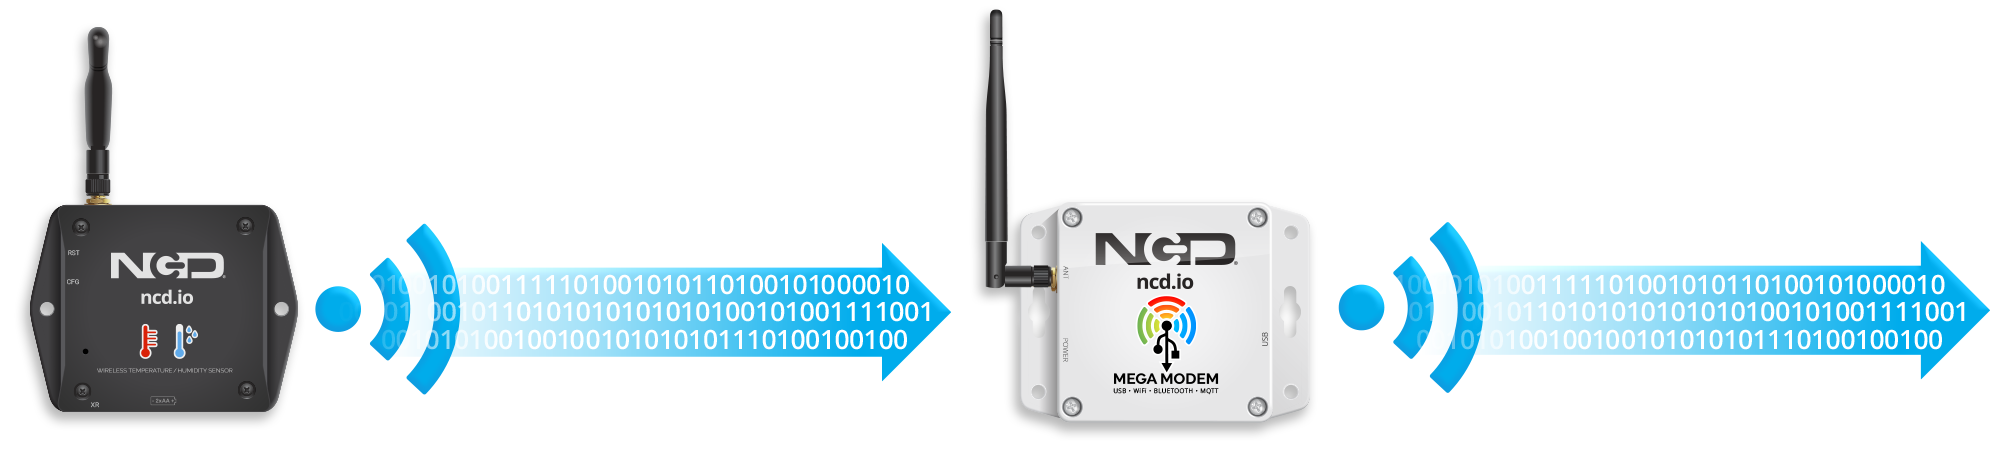 IoT Gateways vs IoT Modems - What's the Difference? - ncd io